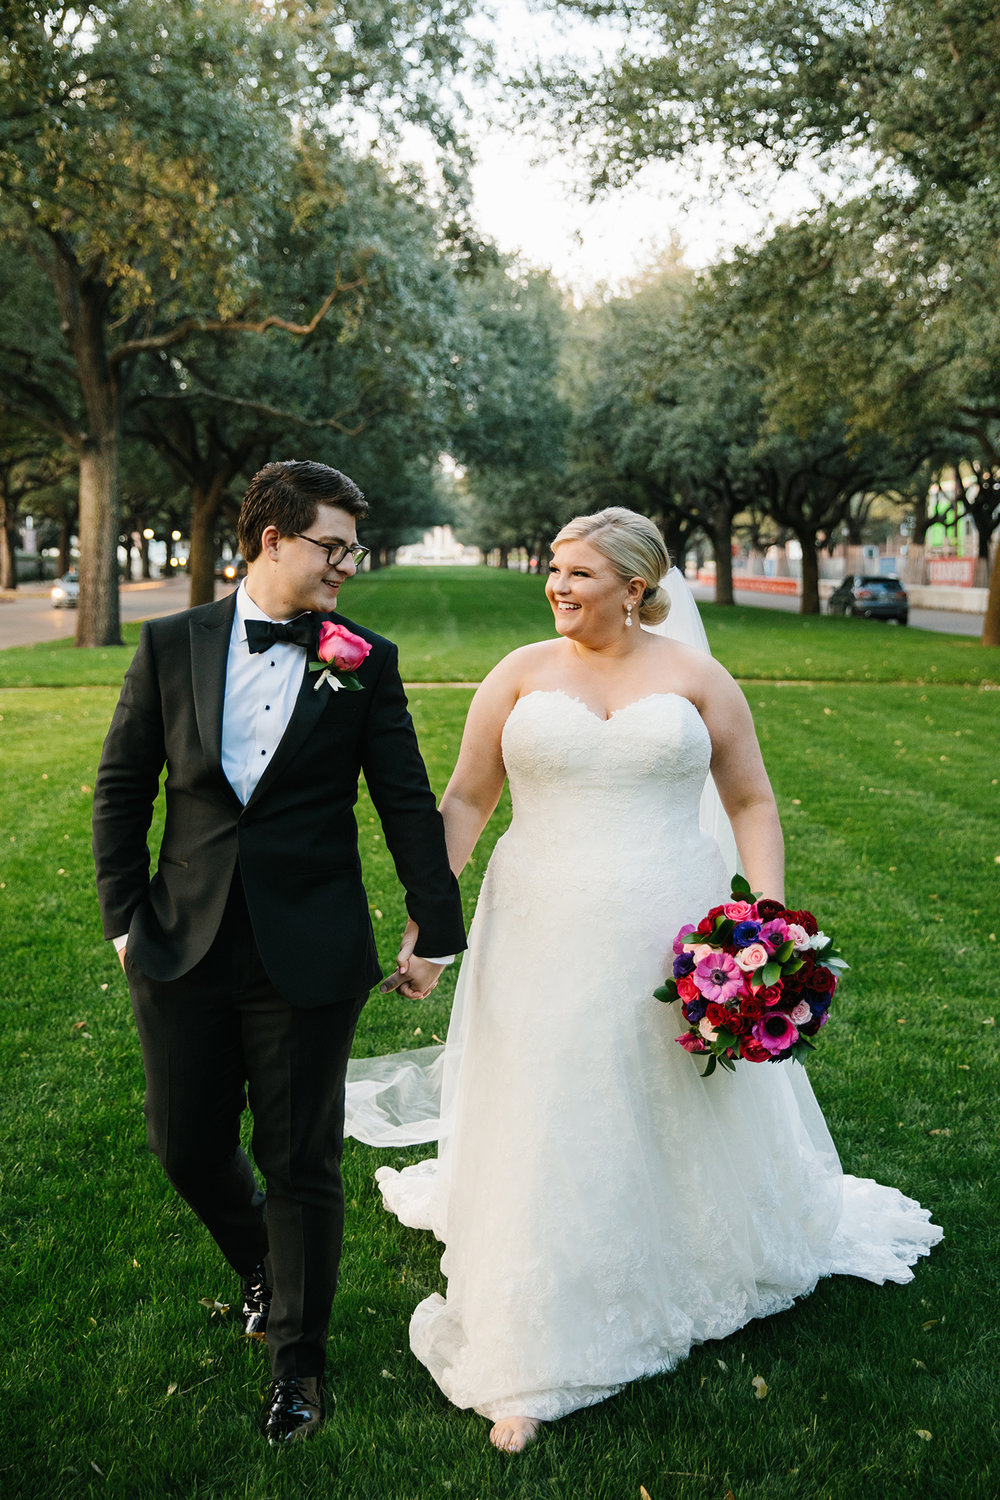 Dallas Weddings Planner - Allday Events - Katie + Matthew at The Adolphus Hotel - 488.jpg